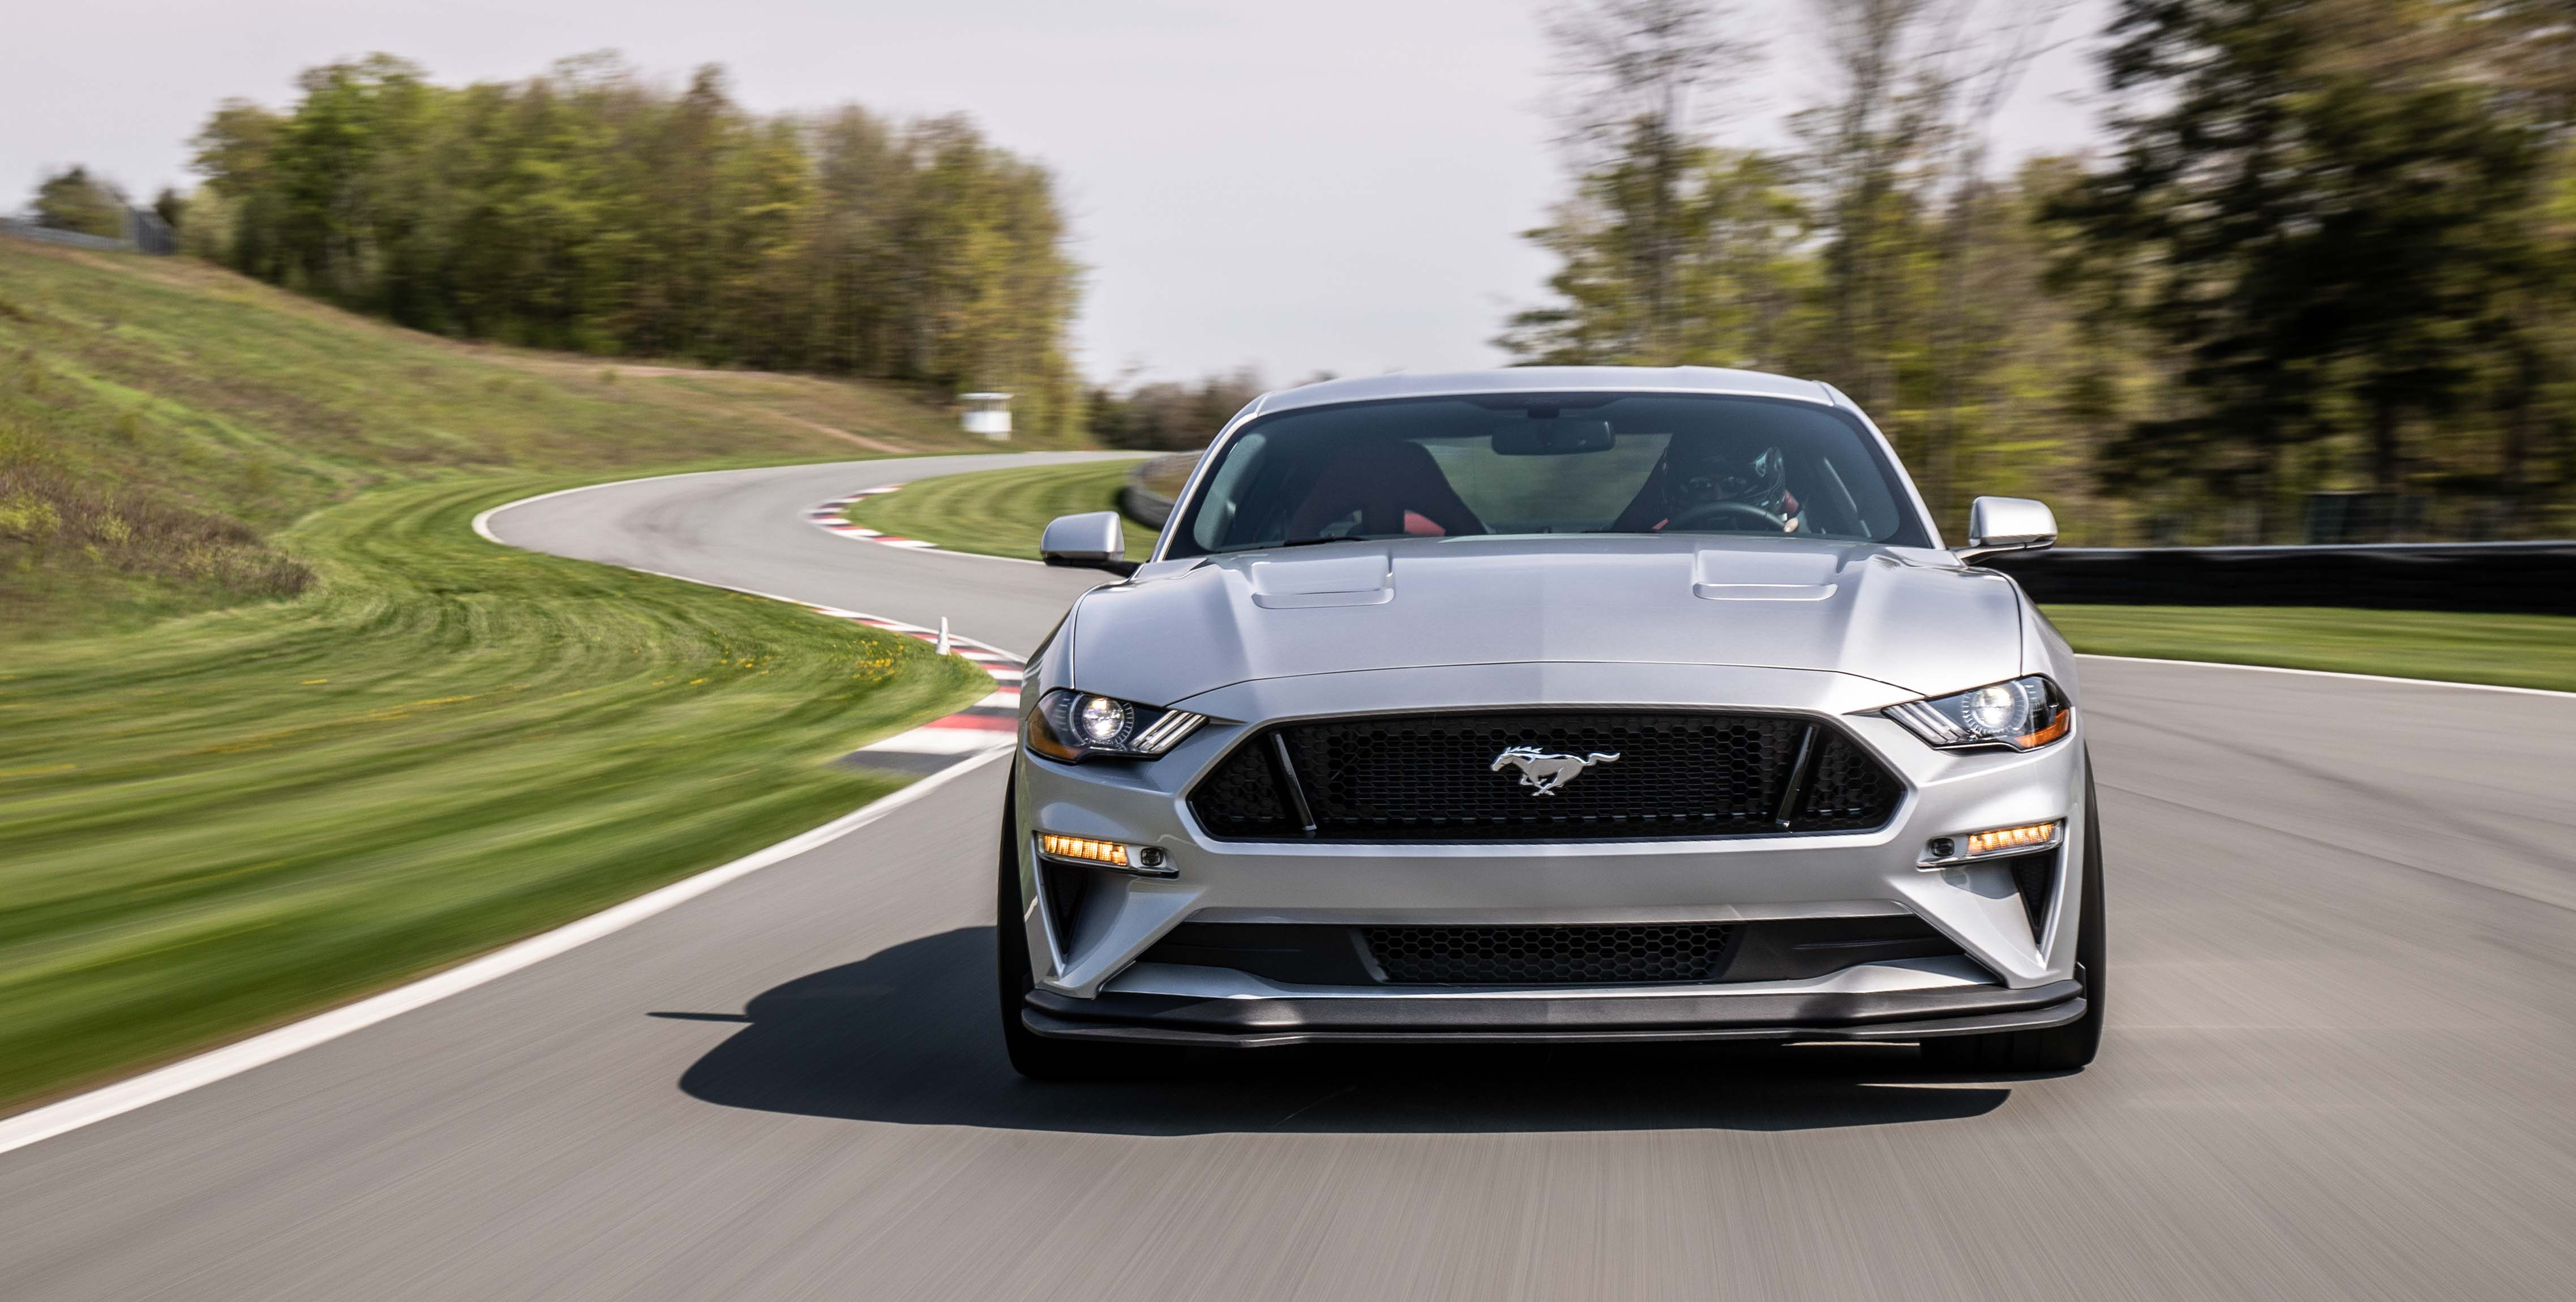 2018 Ford Mustang GT Performance Pack 2 on track front